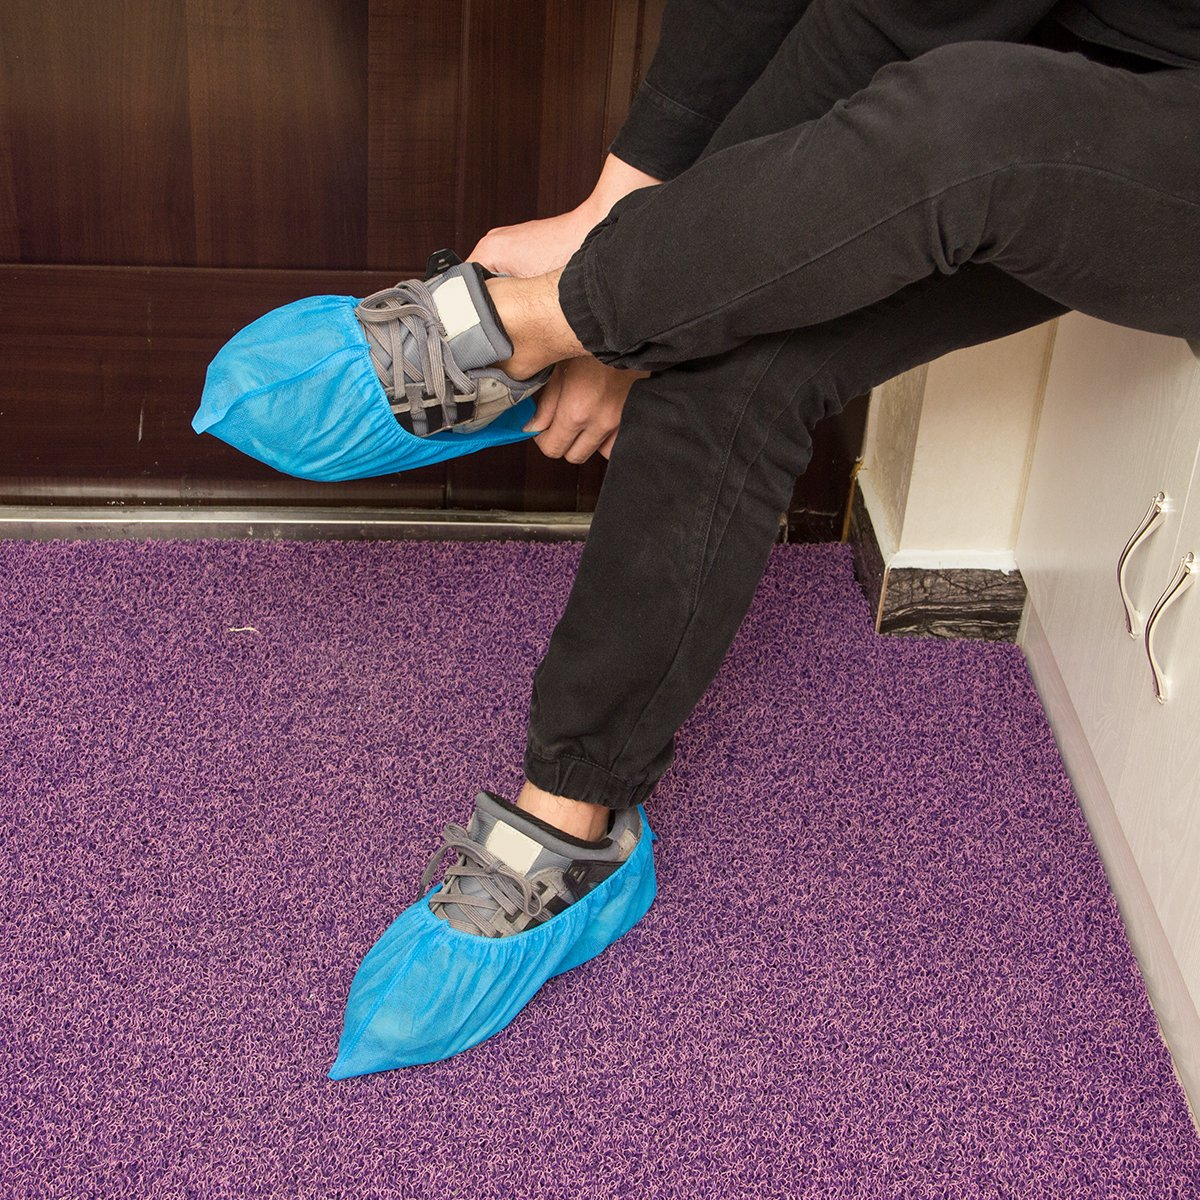 100 pcs Home Disposable Thick Boot & Shoe Cover (5g/pc) - Non-skid & Durable for Workplace, Medical, Indoor or Car Carpet Floor Protection by PAMASE (Image #3)